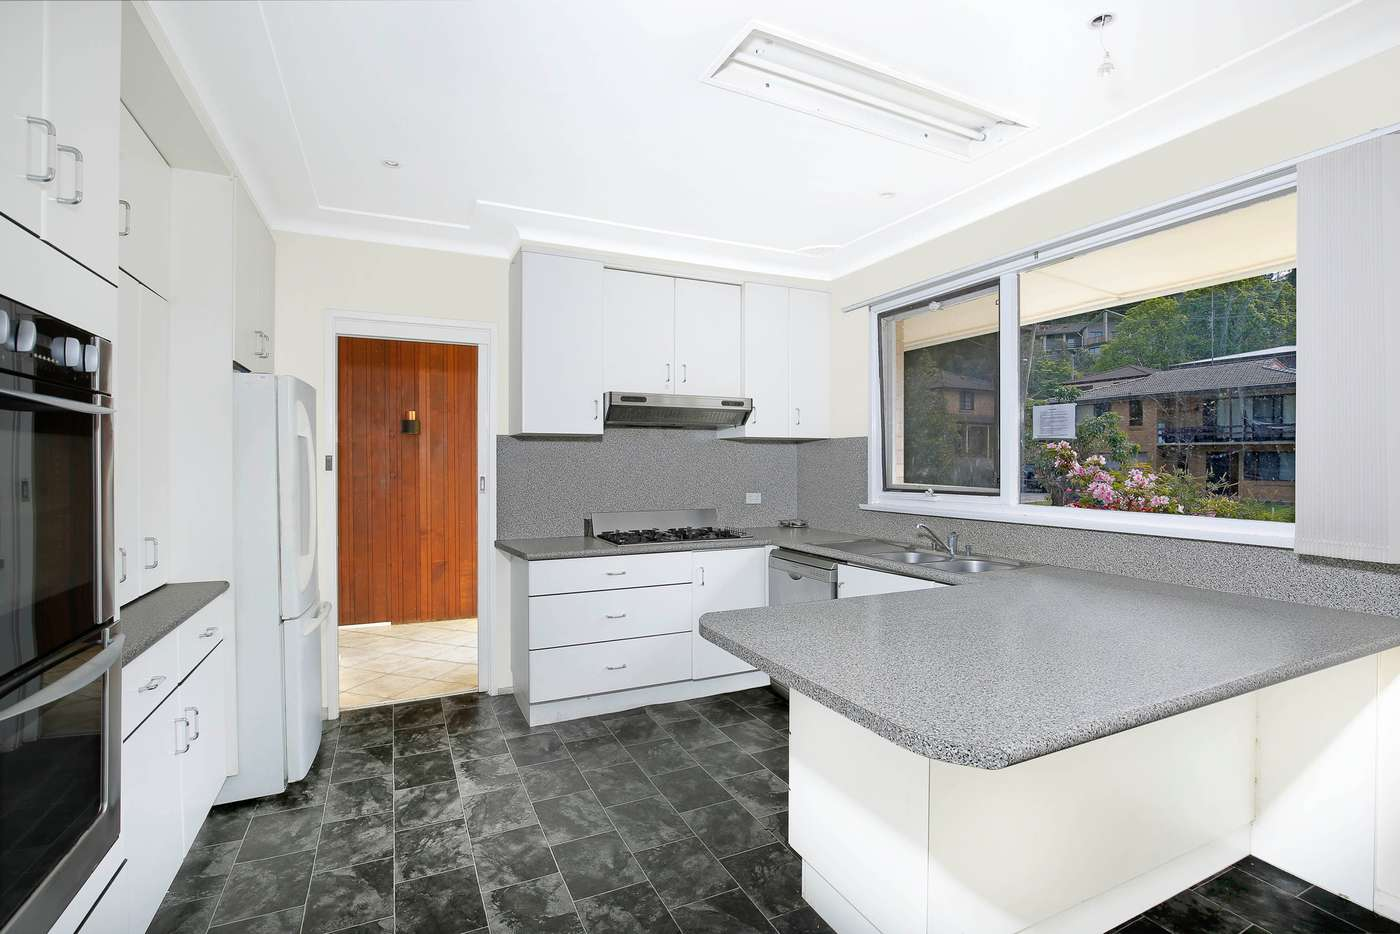 Main view of Homely house listing, 2/21 Dallas Street, Keiraville NSW 2500